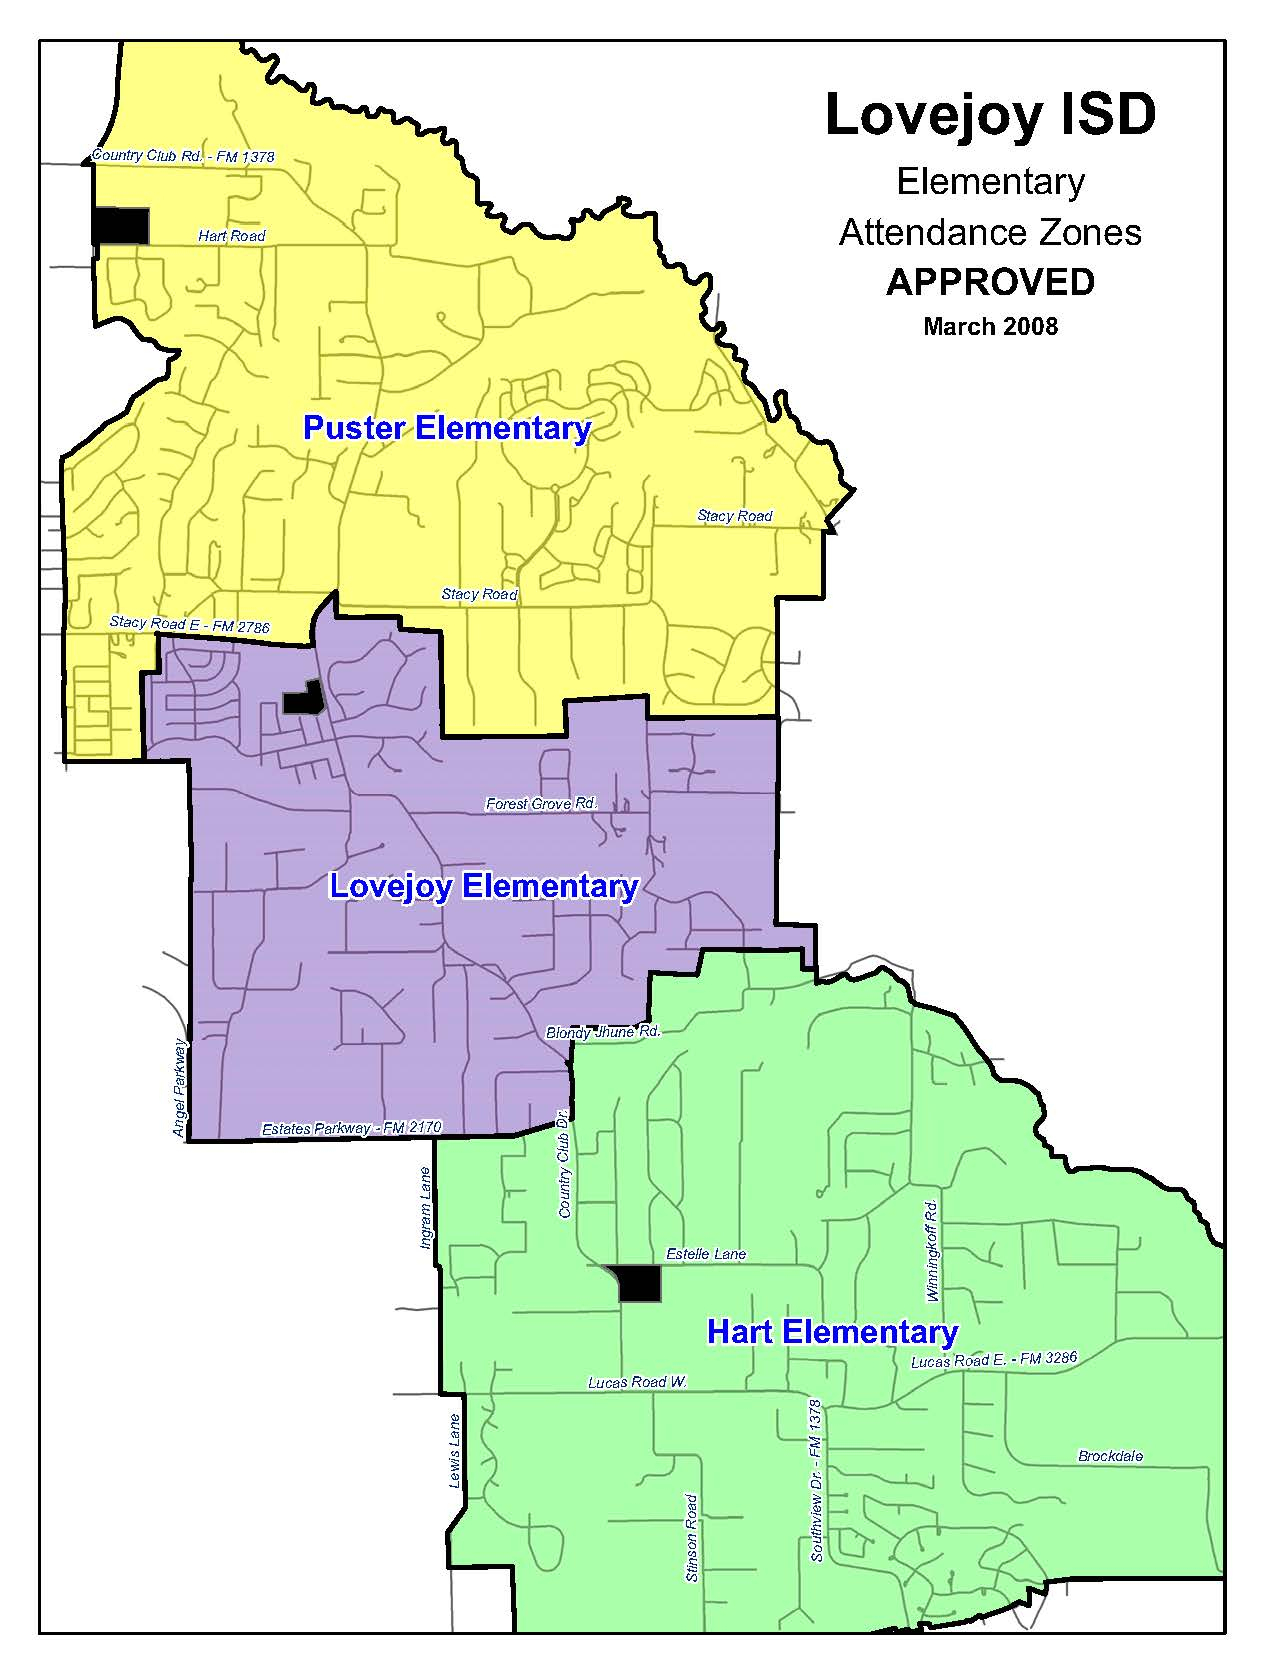 Attendance Zones – About Lisd – Lovejoy Independent School District - Texas School District Map